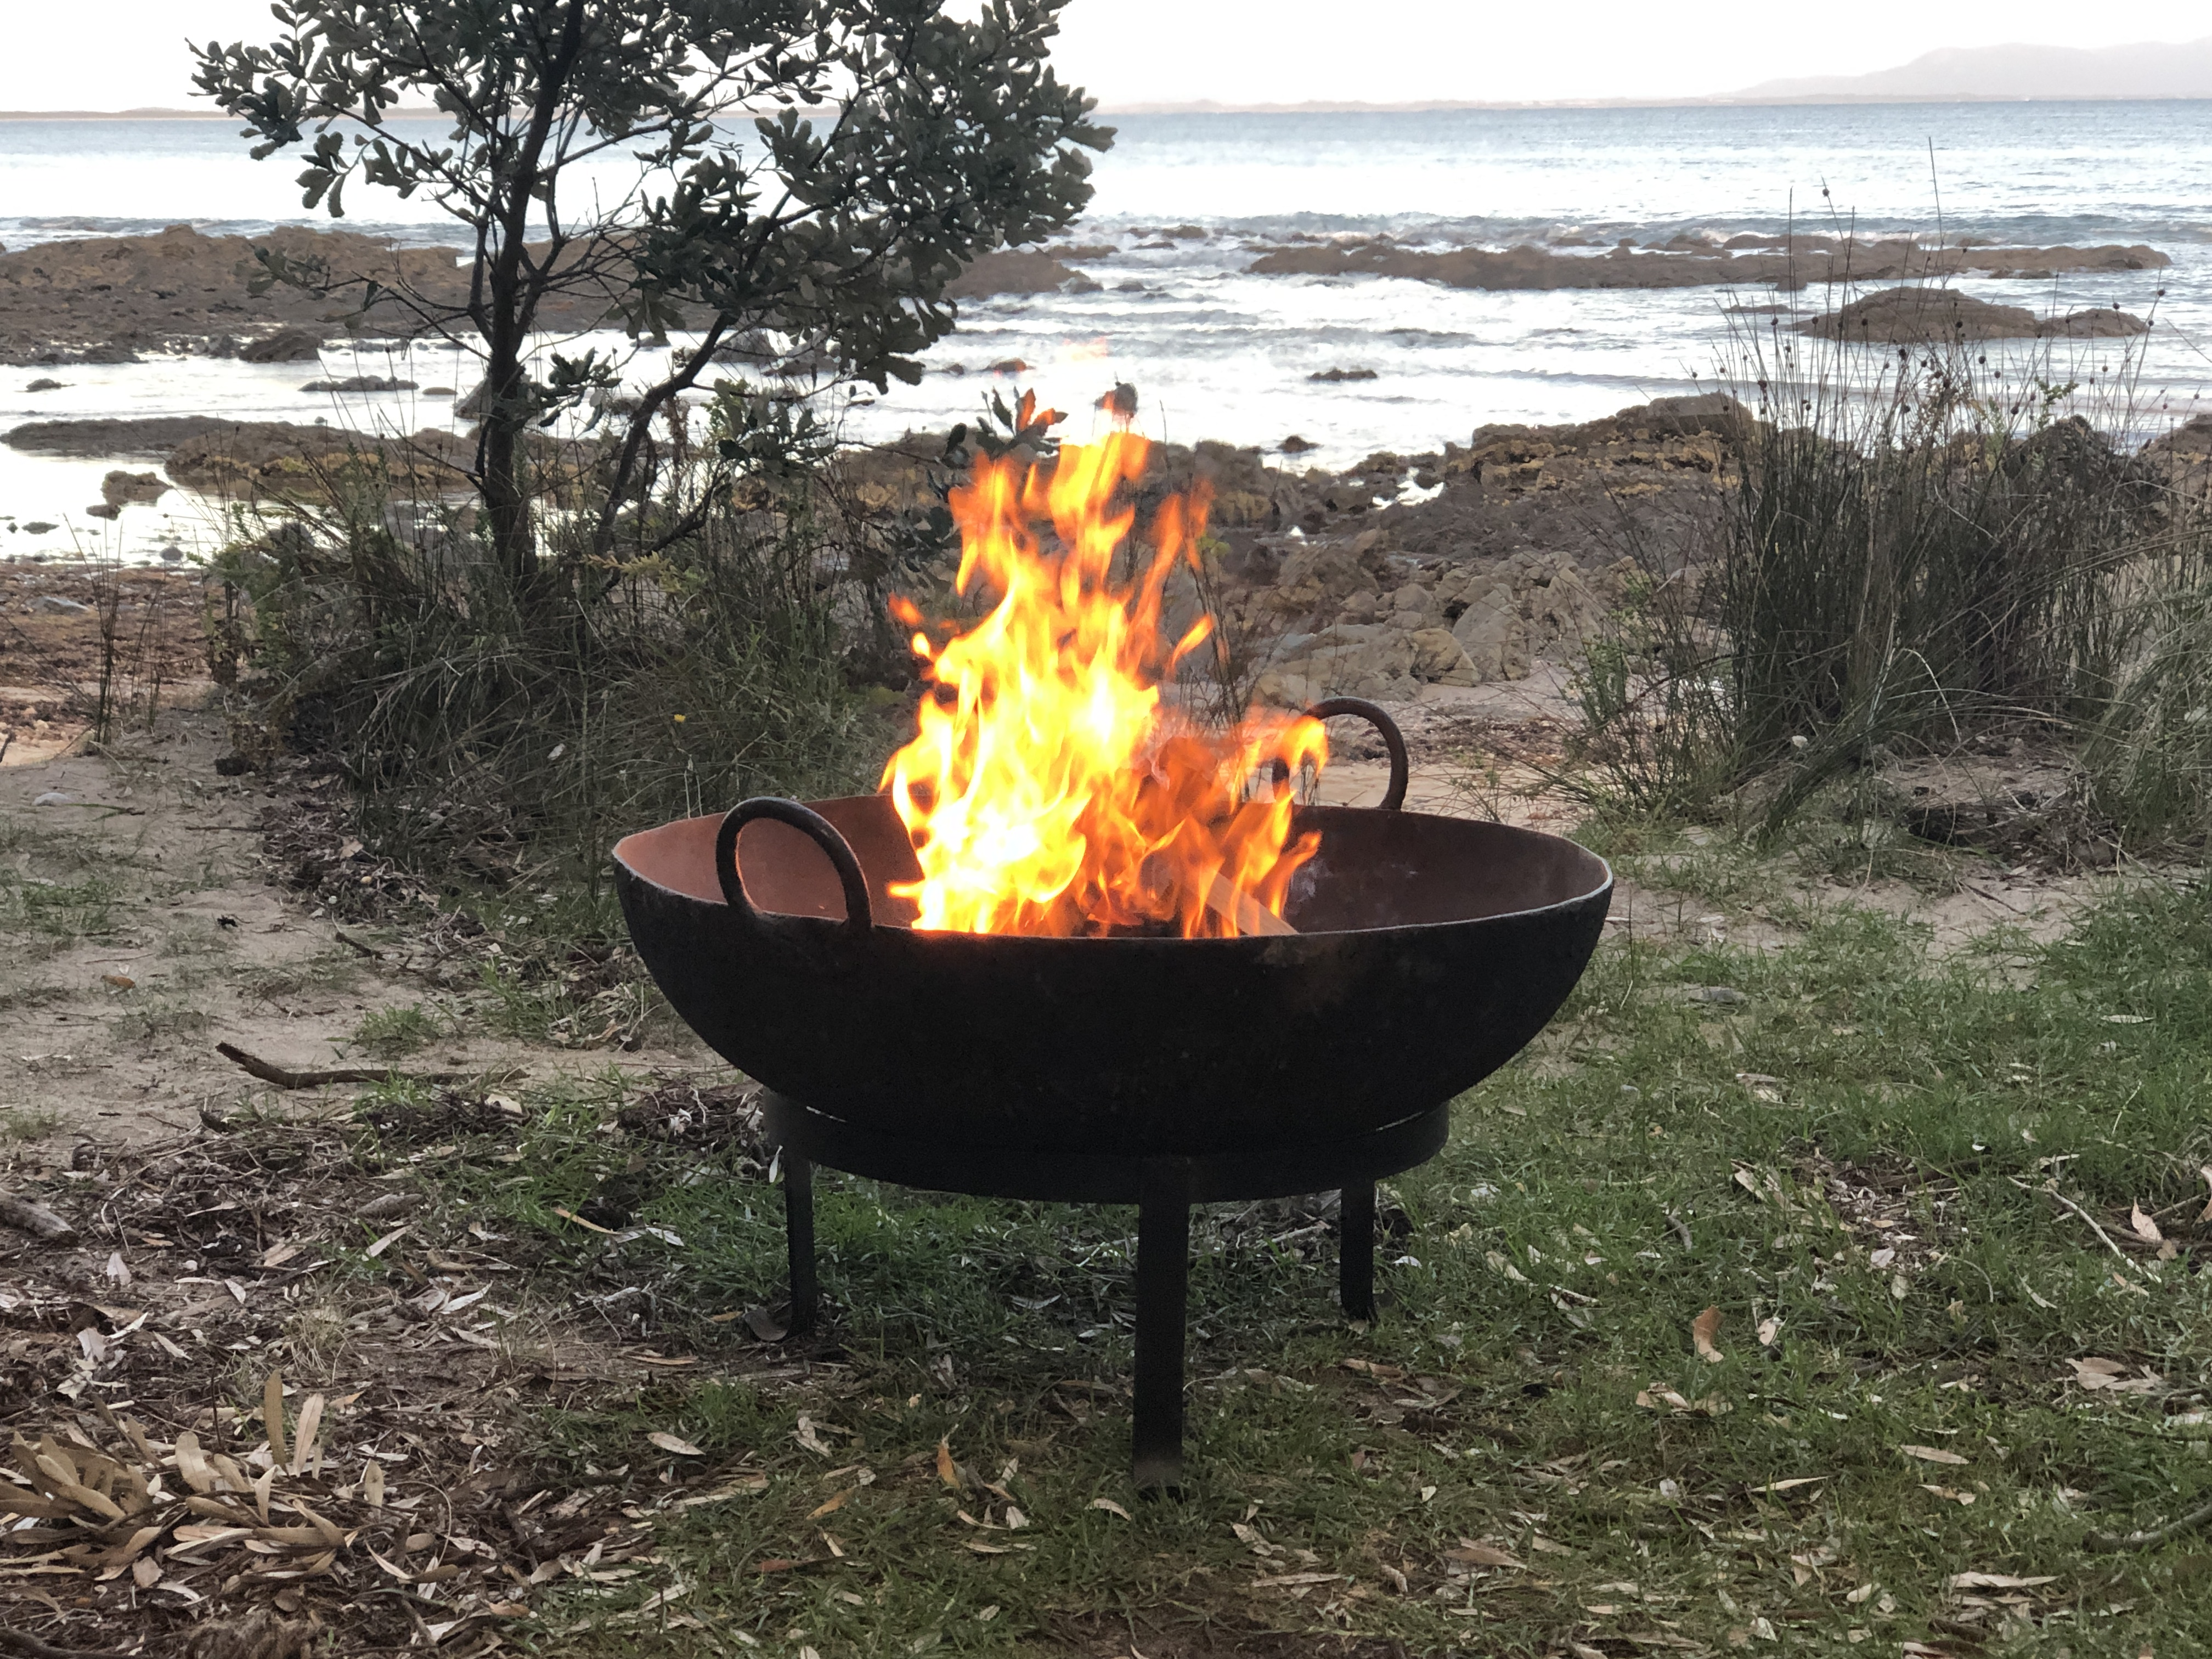 Indian fire pit by the beach